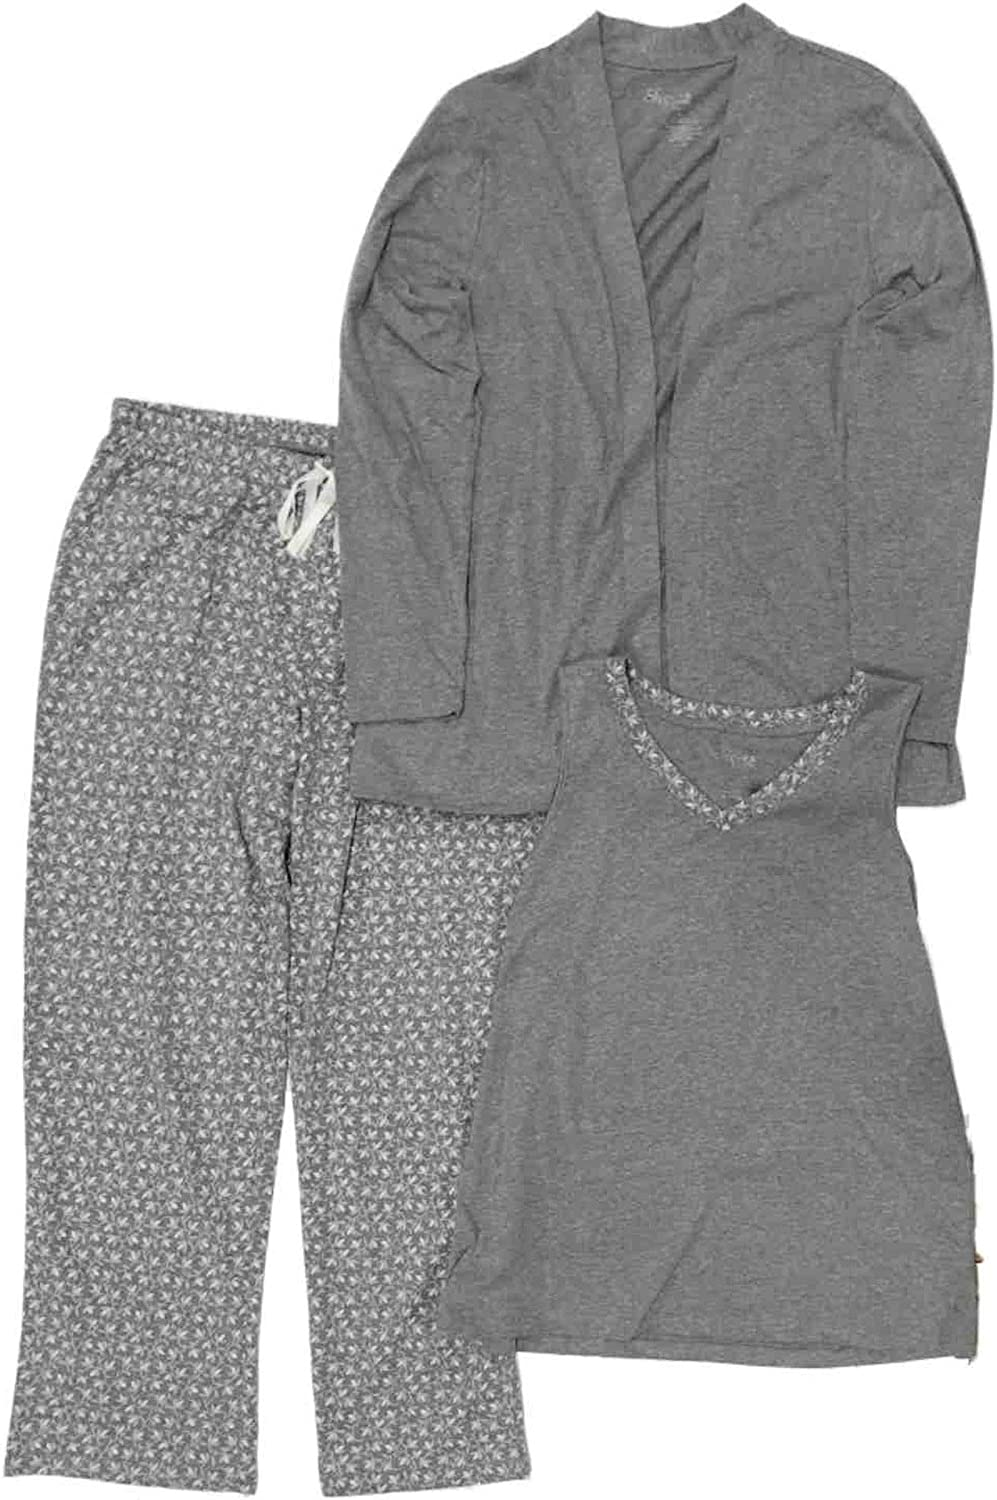 Womens Knit Pajama Set GRAY TANK TOP Love Arrows RED PLAID SHORTS Size S 4-6